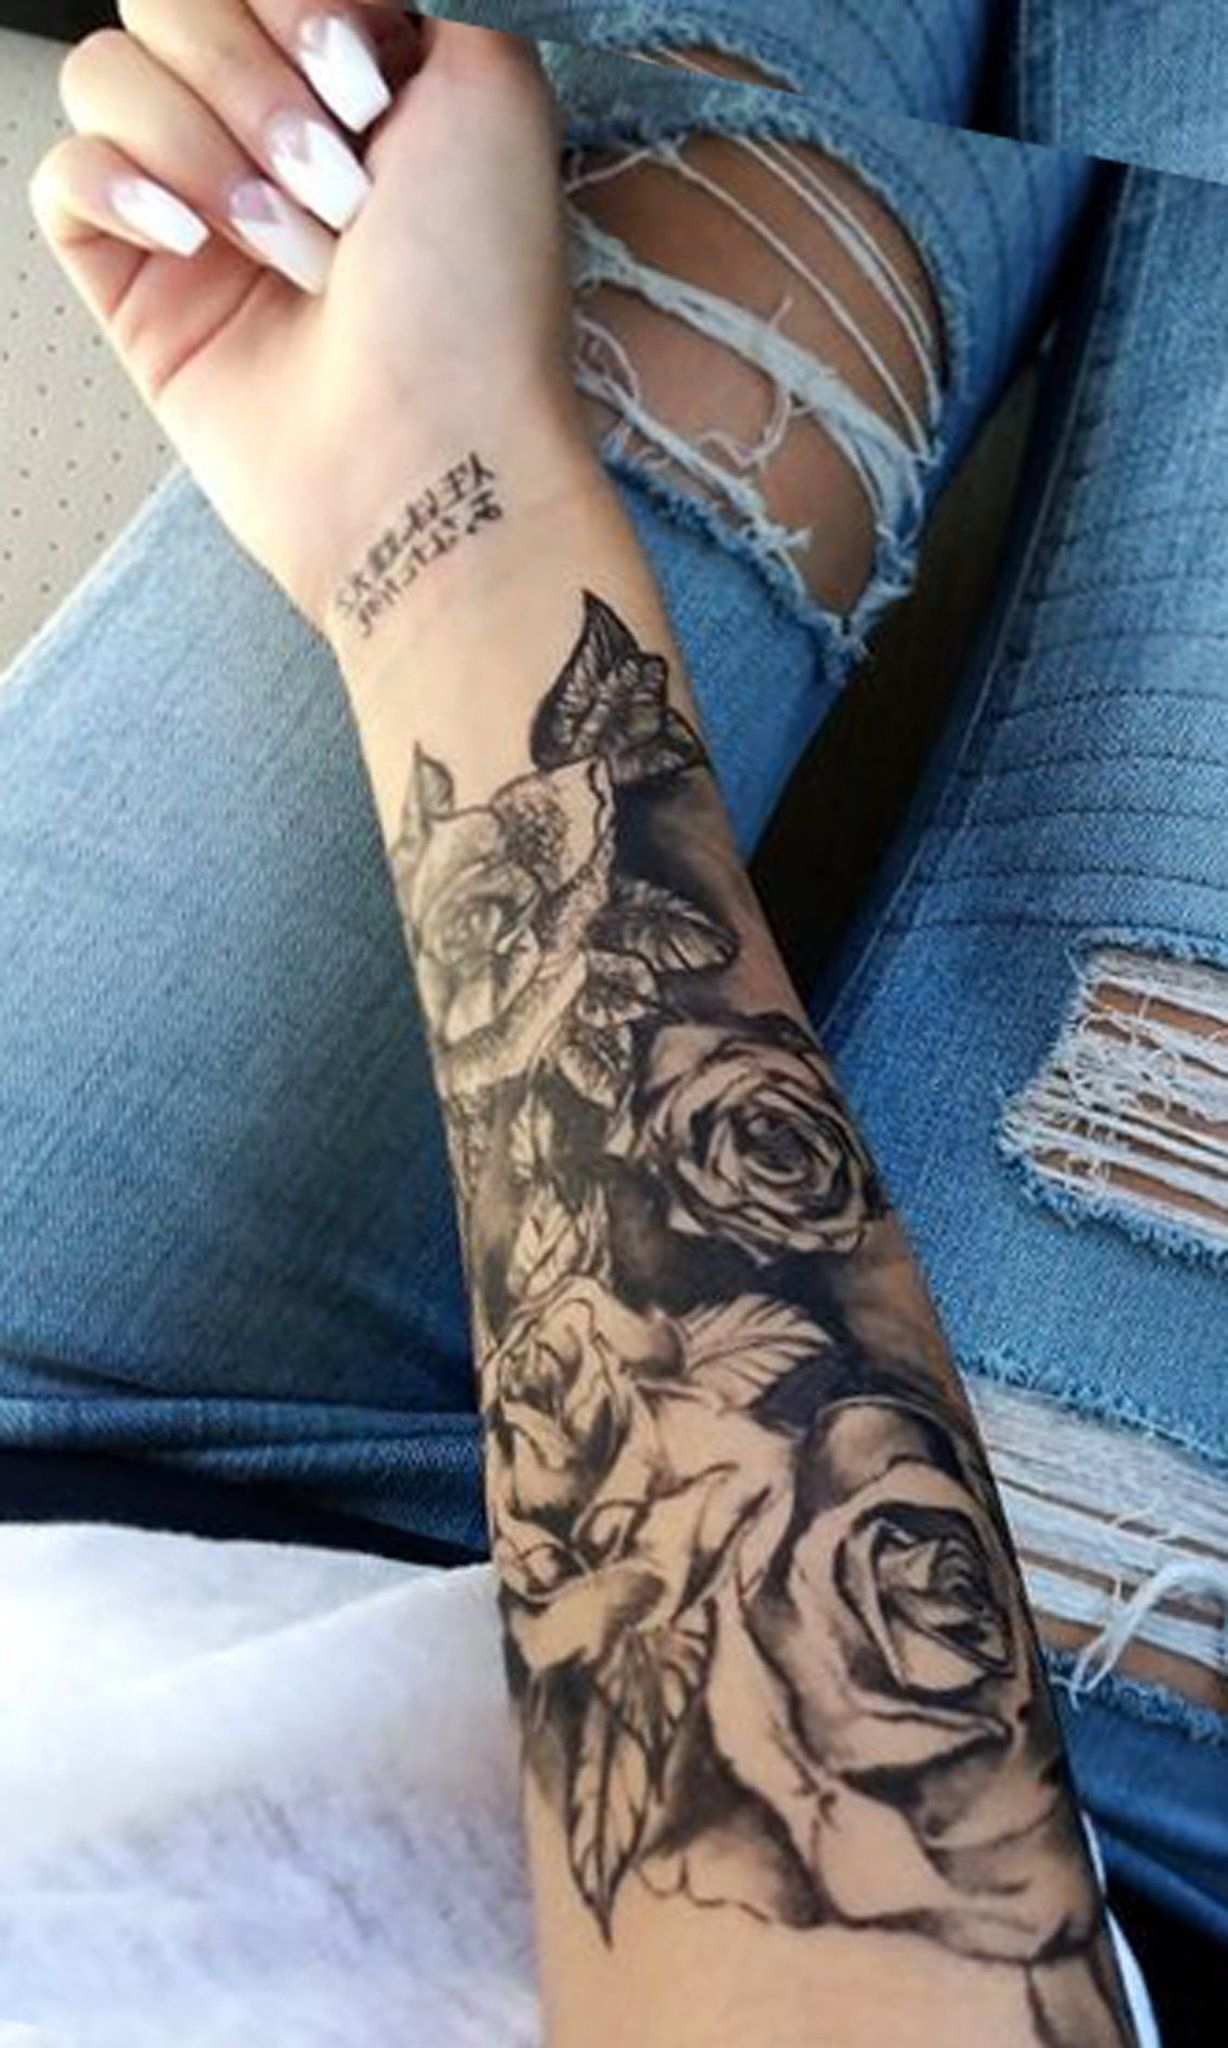 Black Rose Forearm Tattoo Ideas For Women Realistic Floral Flower for size 1228 X 2048